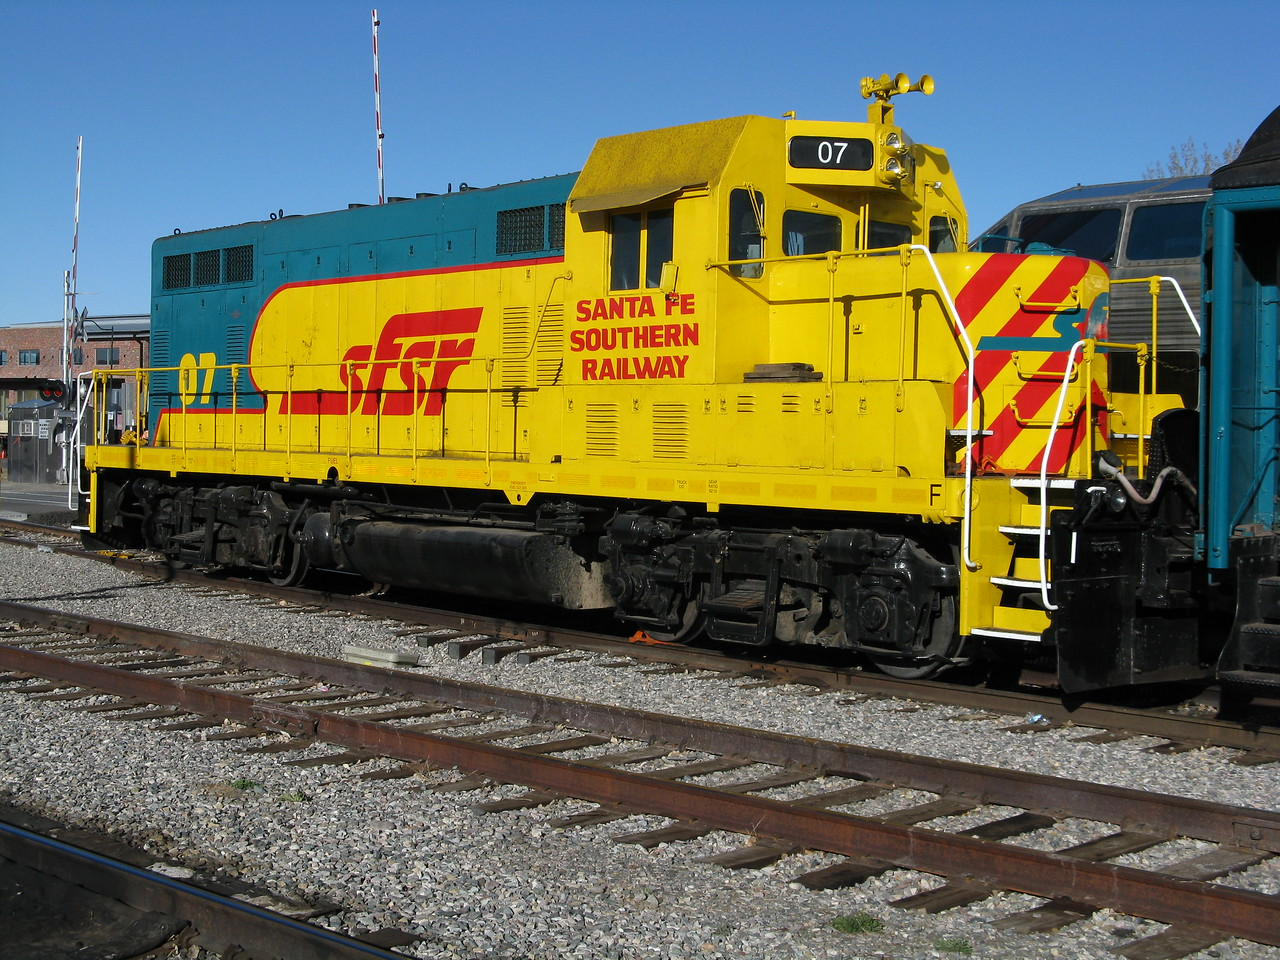 This engine looked like an EMD GP-20 to me.  It was sitting at the railway station in Santa Fe, attached to passenger cars.  I think it runs excursions on the weekends.